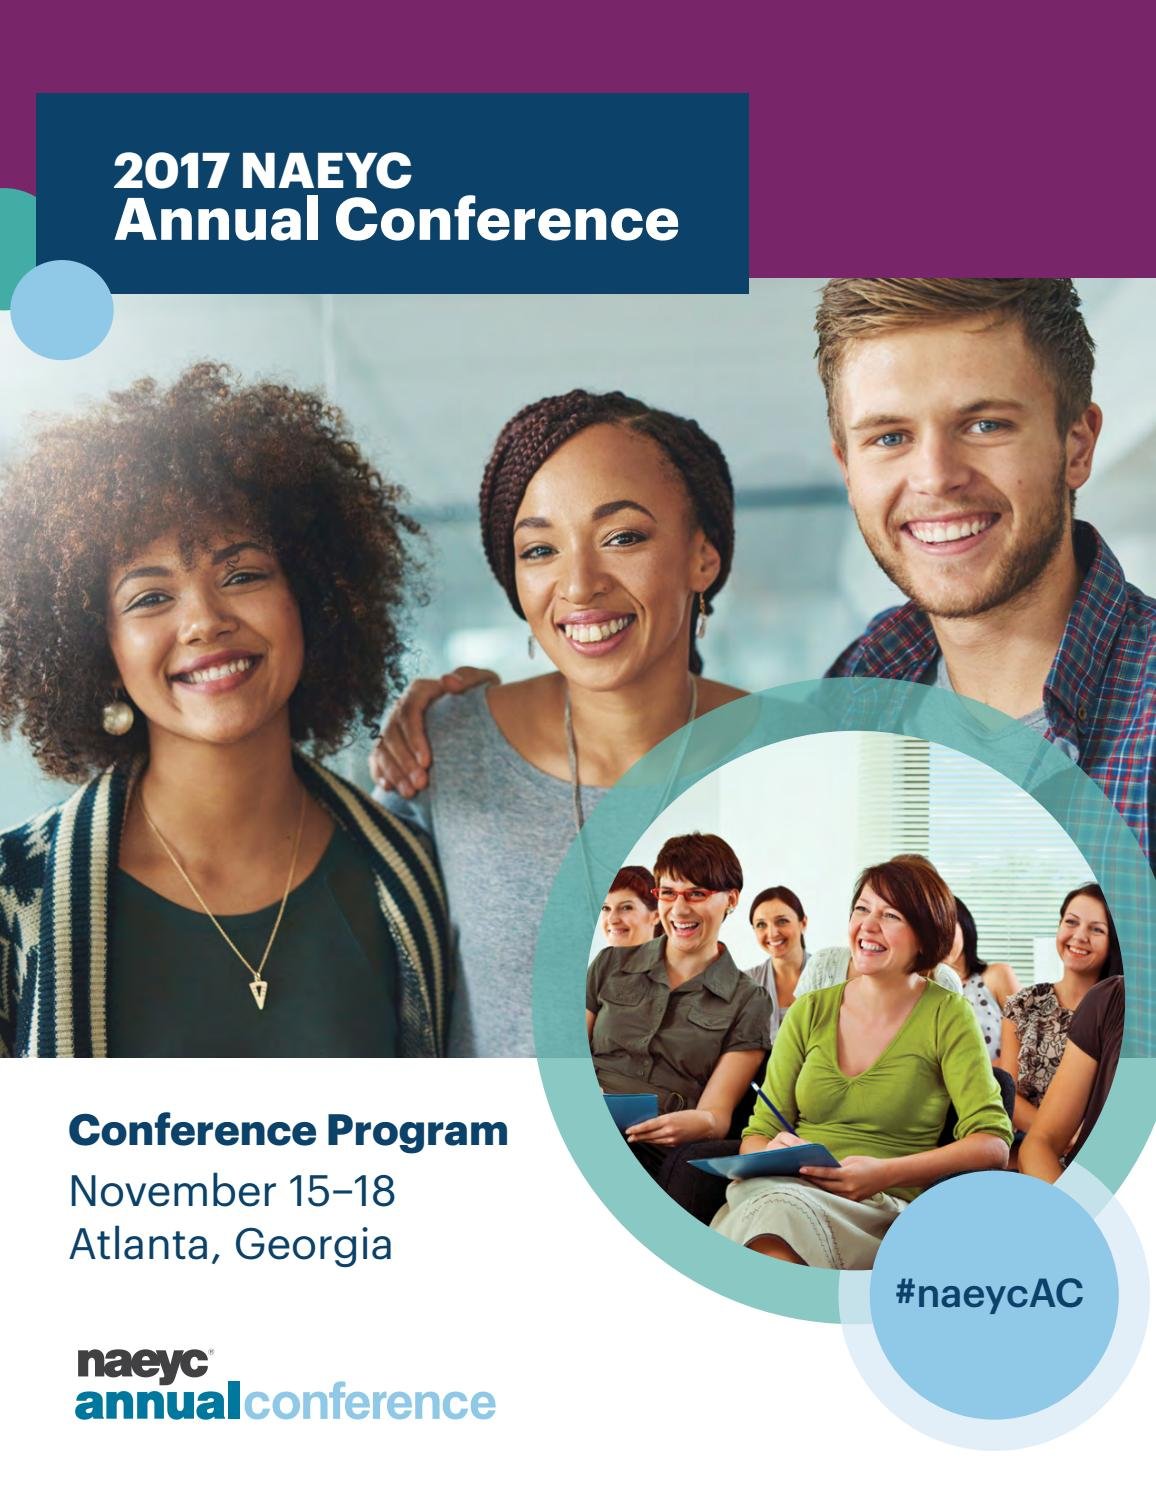 NAEYC 2017 Annual Conference Program by NAEYC - issuu